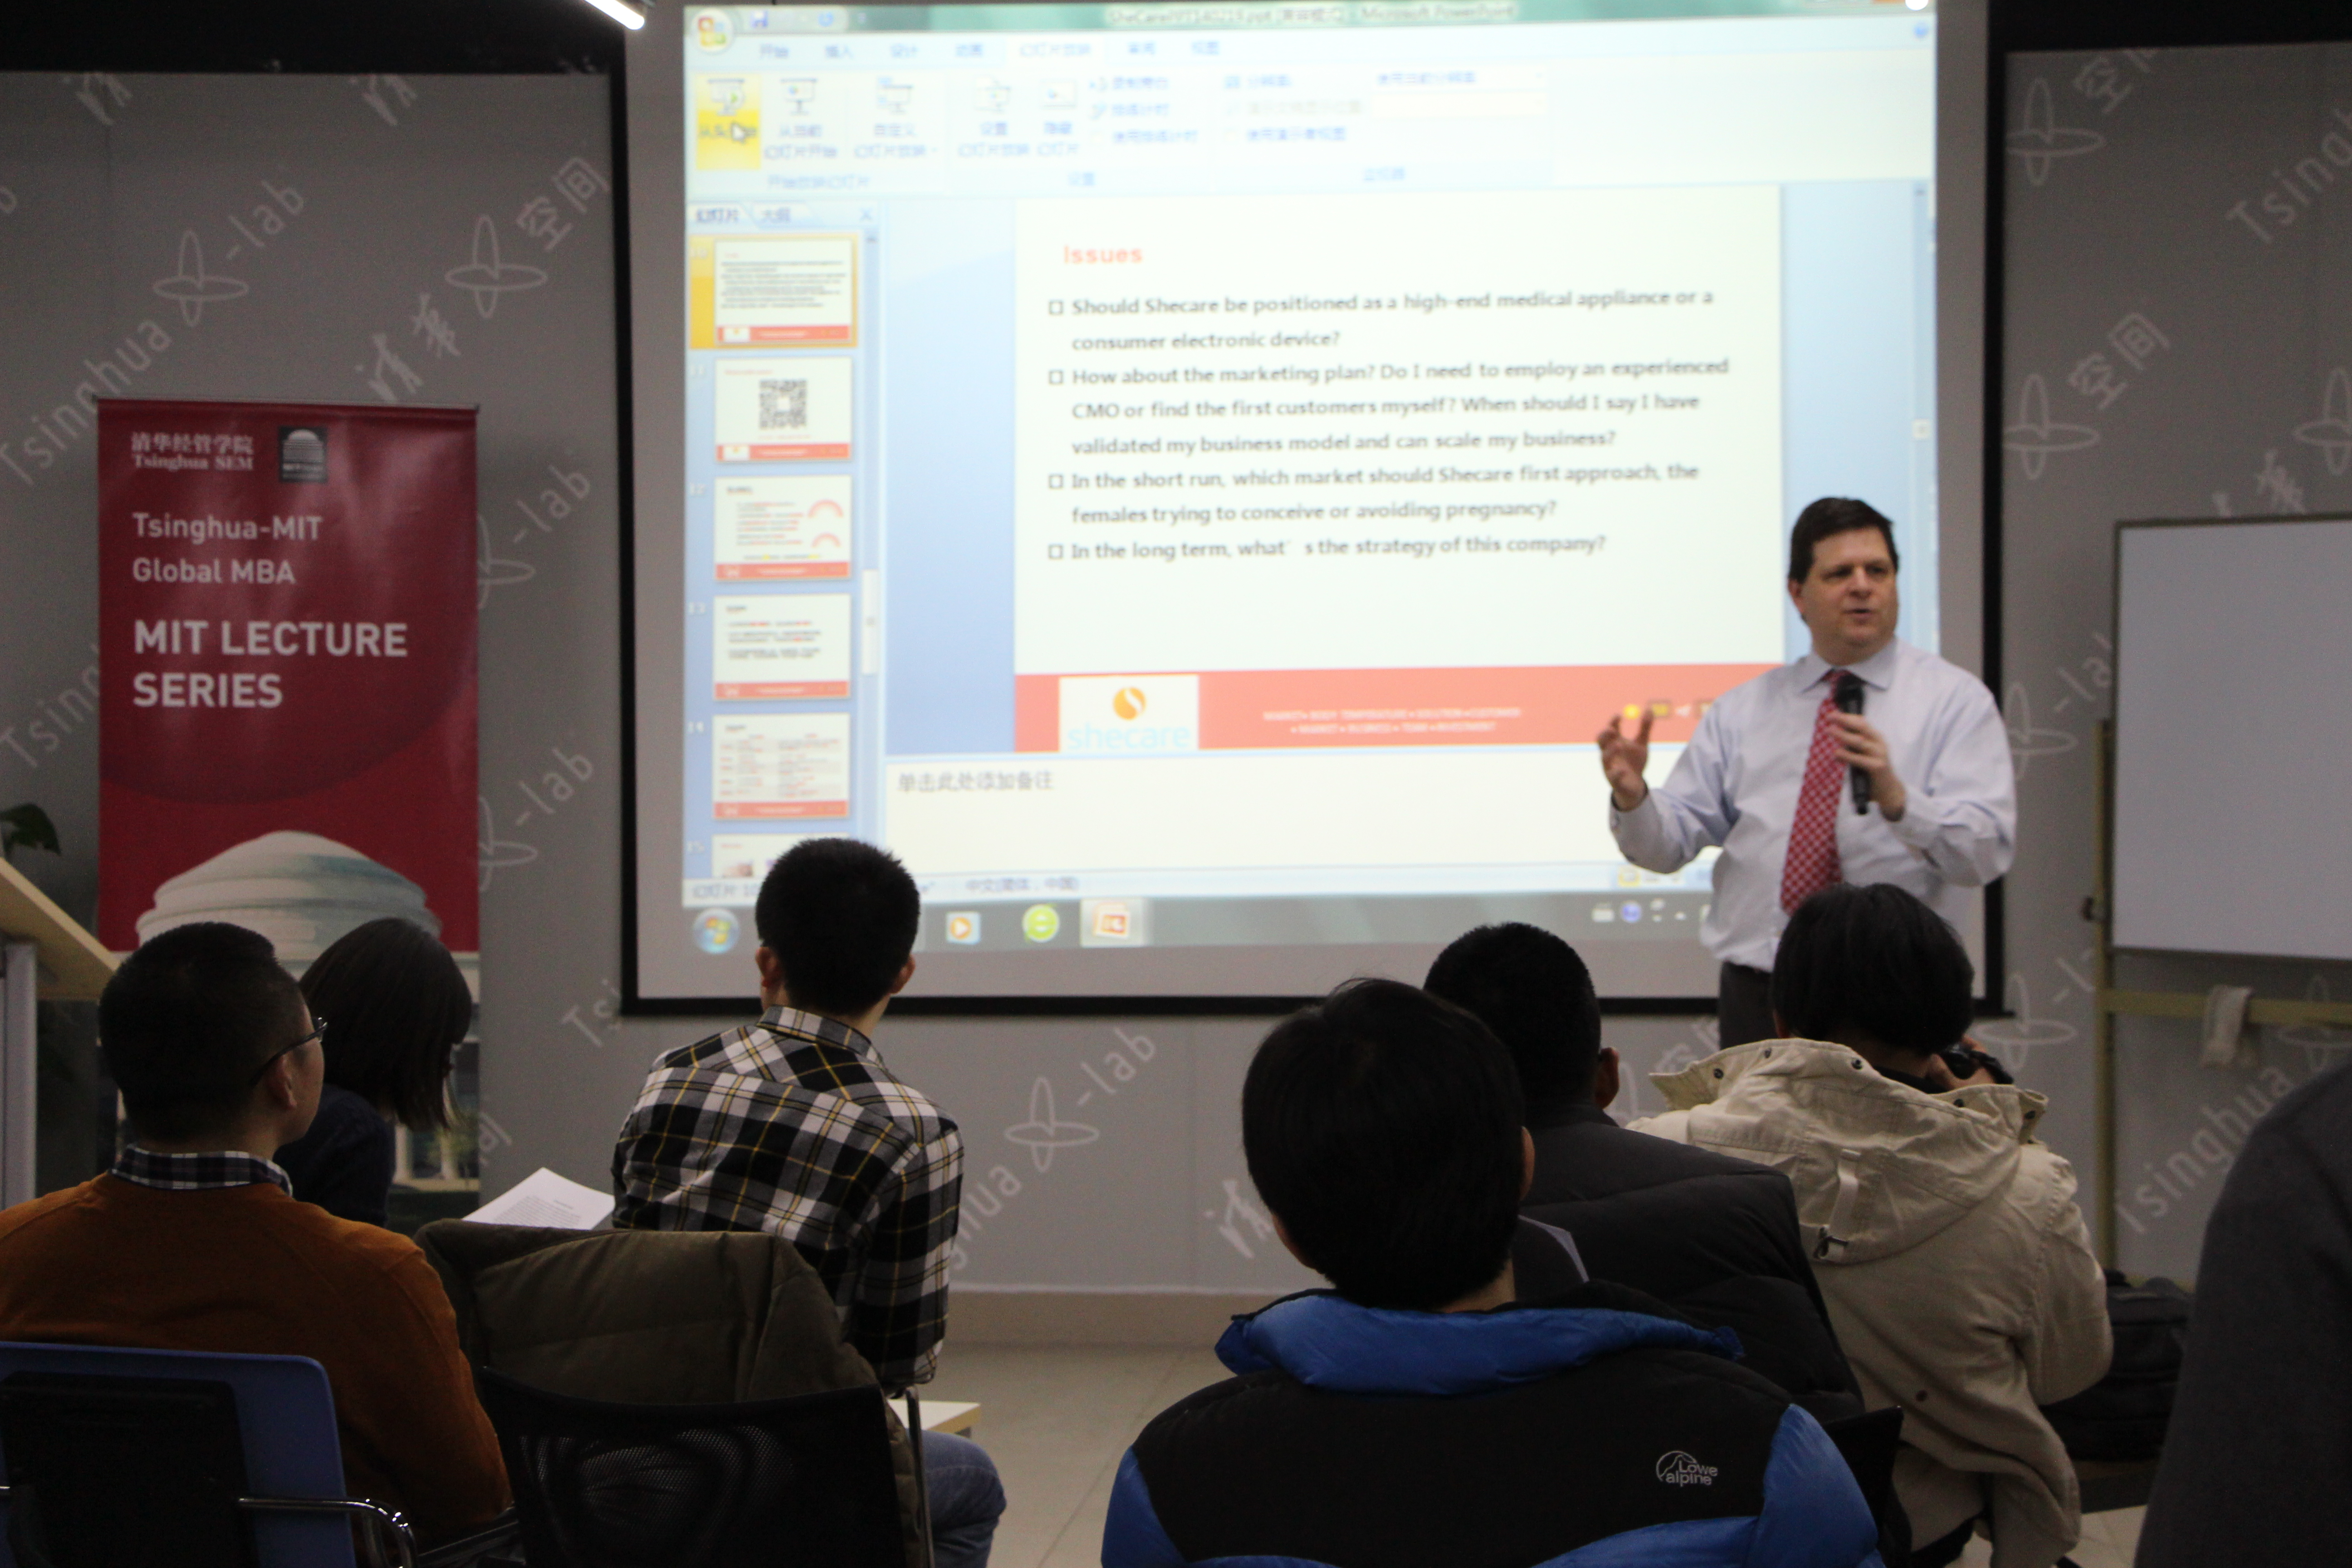 【x-lab Learning】Tsinghua-MIT Global MBA Lecture by Scott Stern from MIT Sloan Business School